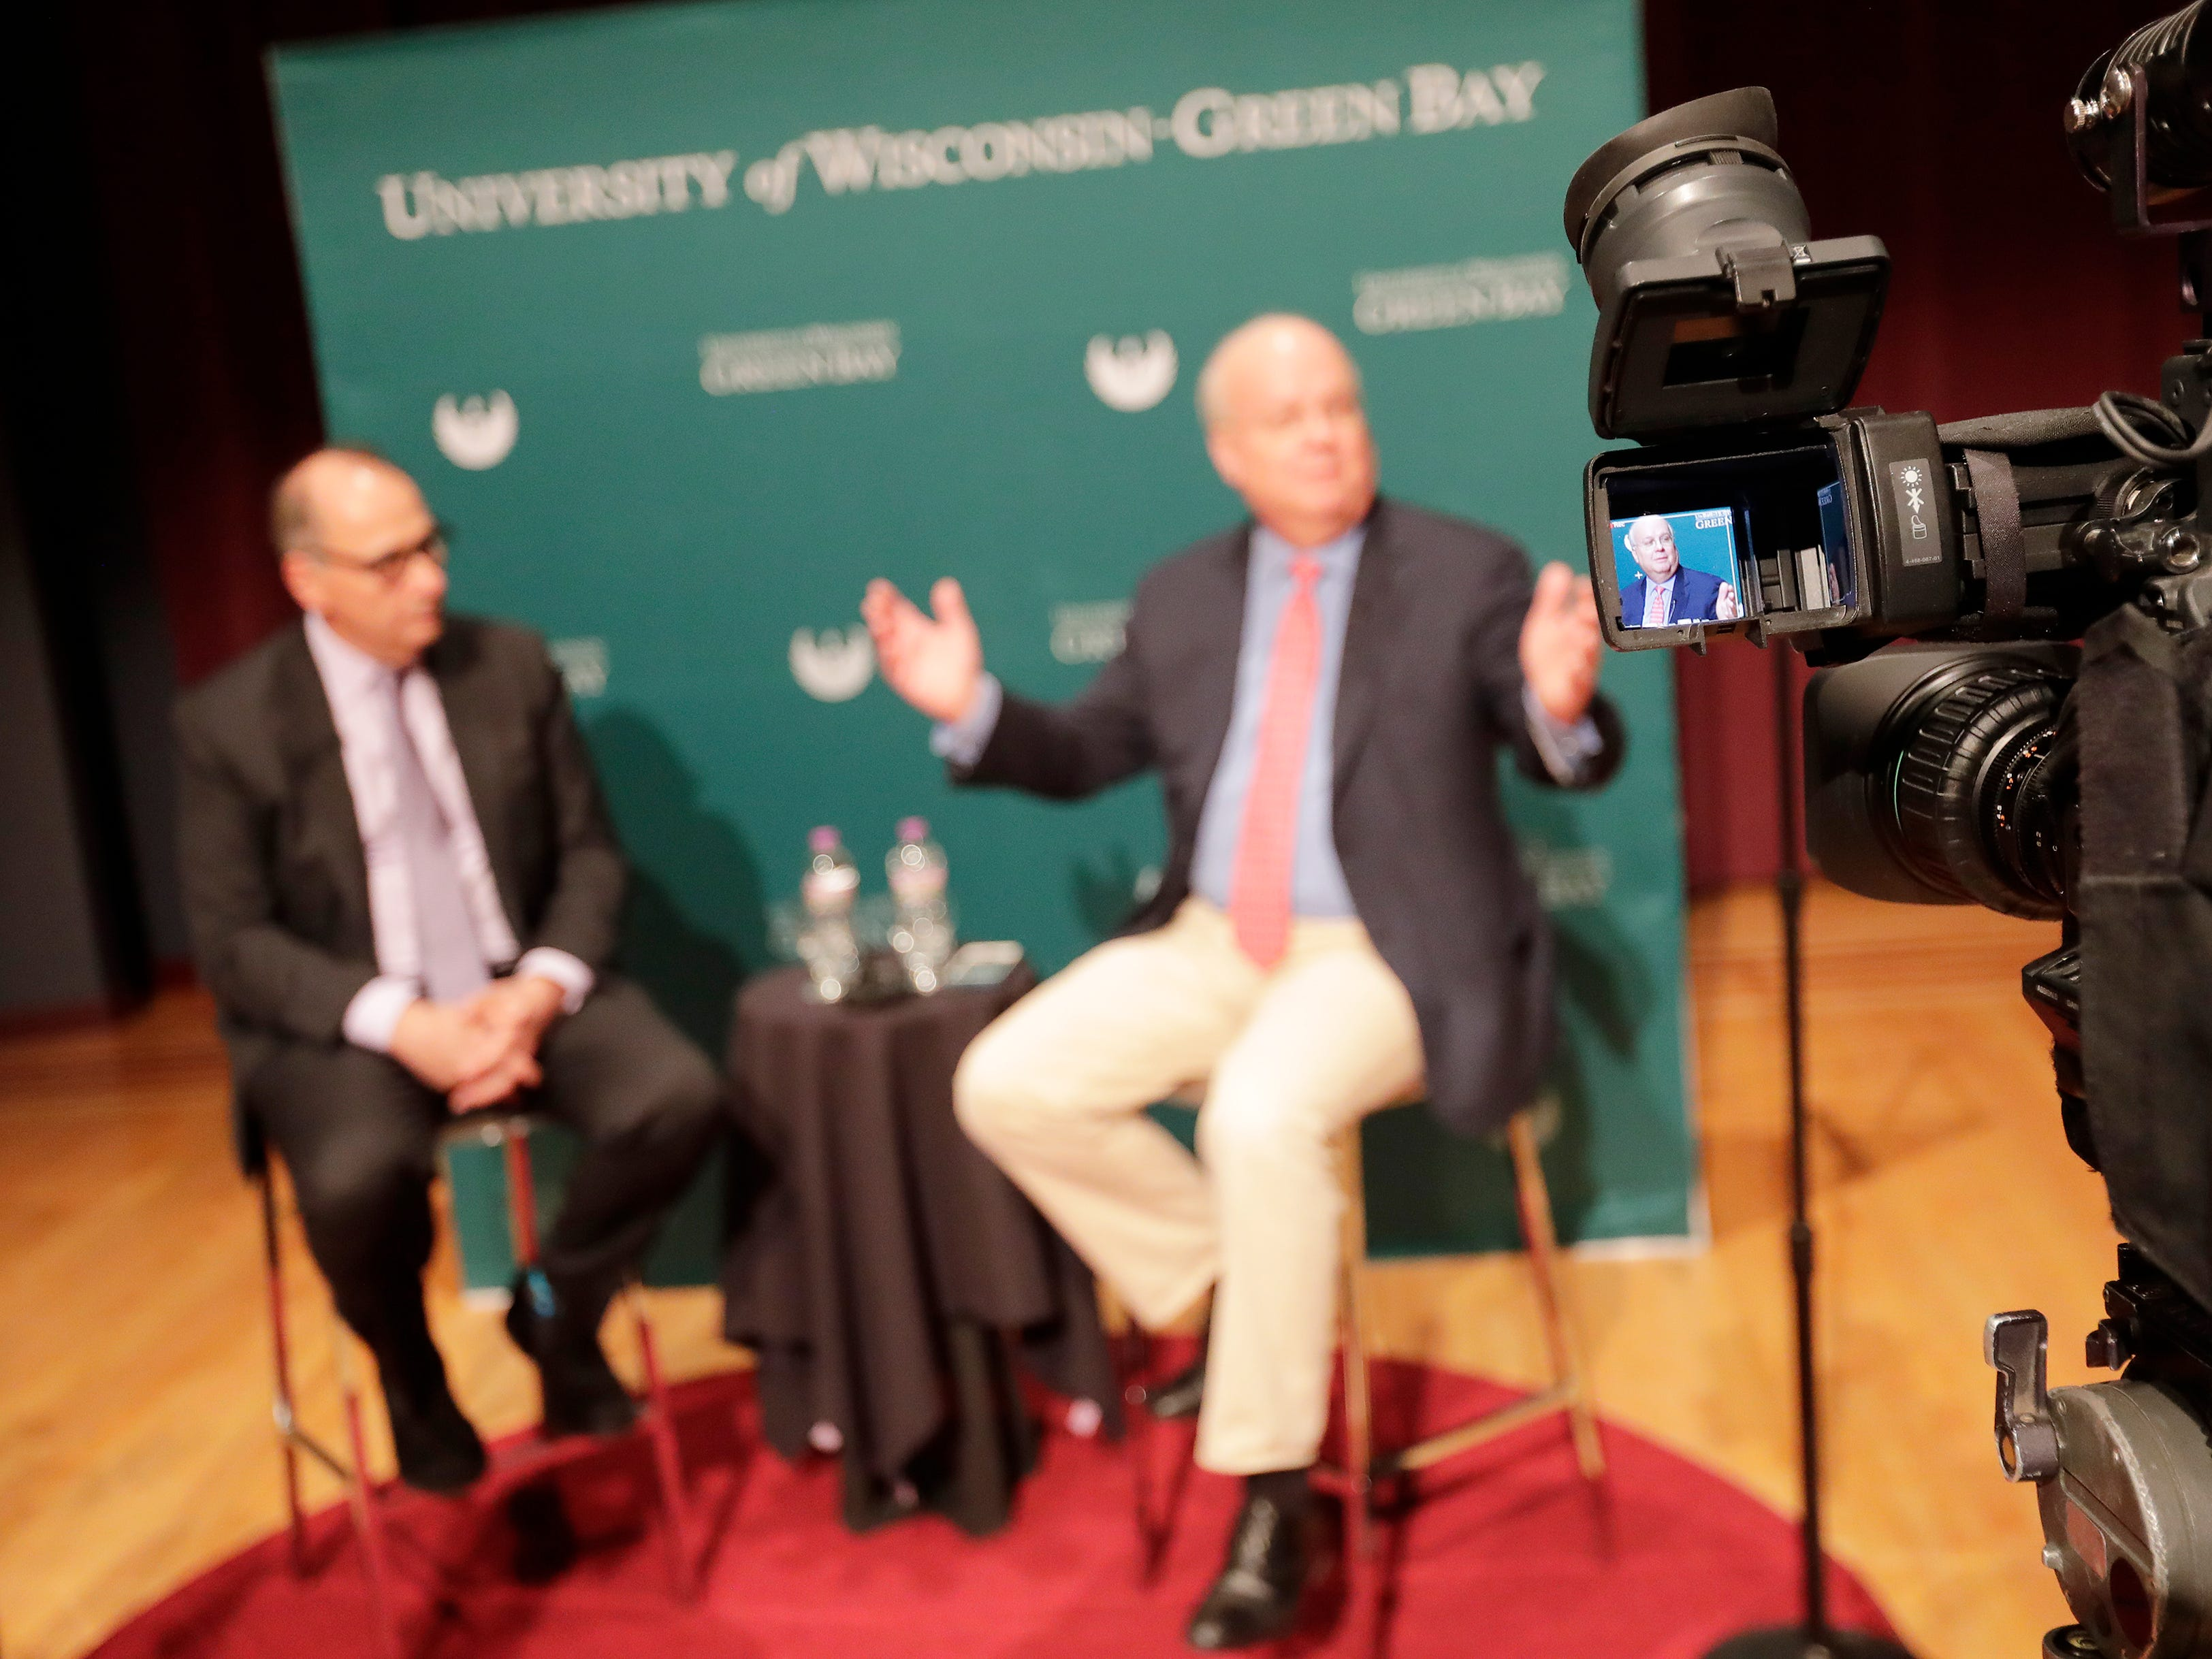 Political consultants Karl Rove and David Axelrod speak to members of the media before their point-counterpoint event at UW-Green Bay on Wednesday, April 3, 2019 in Green Bay, Wis.